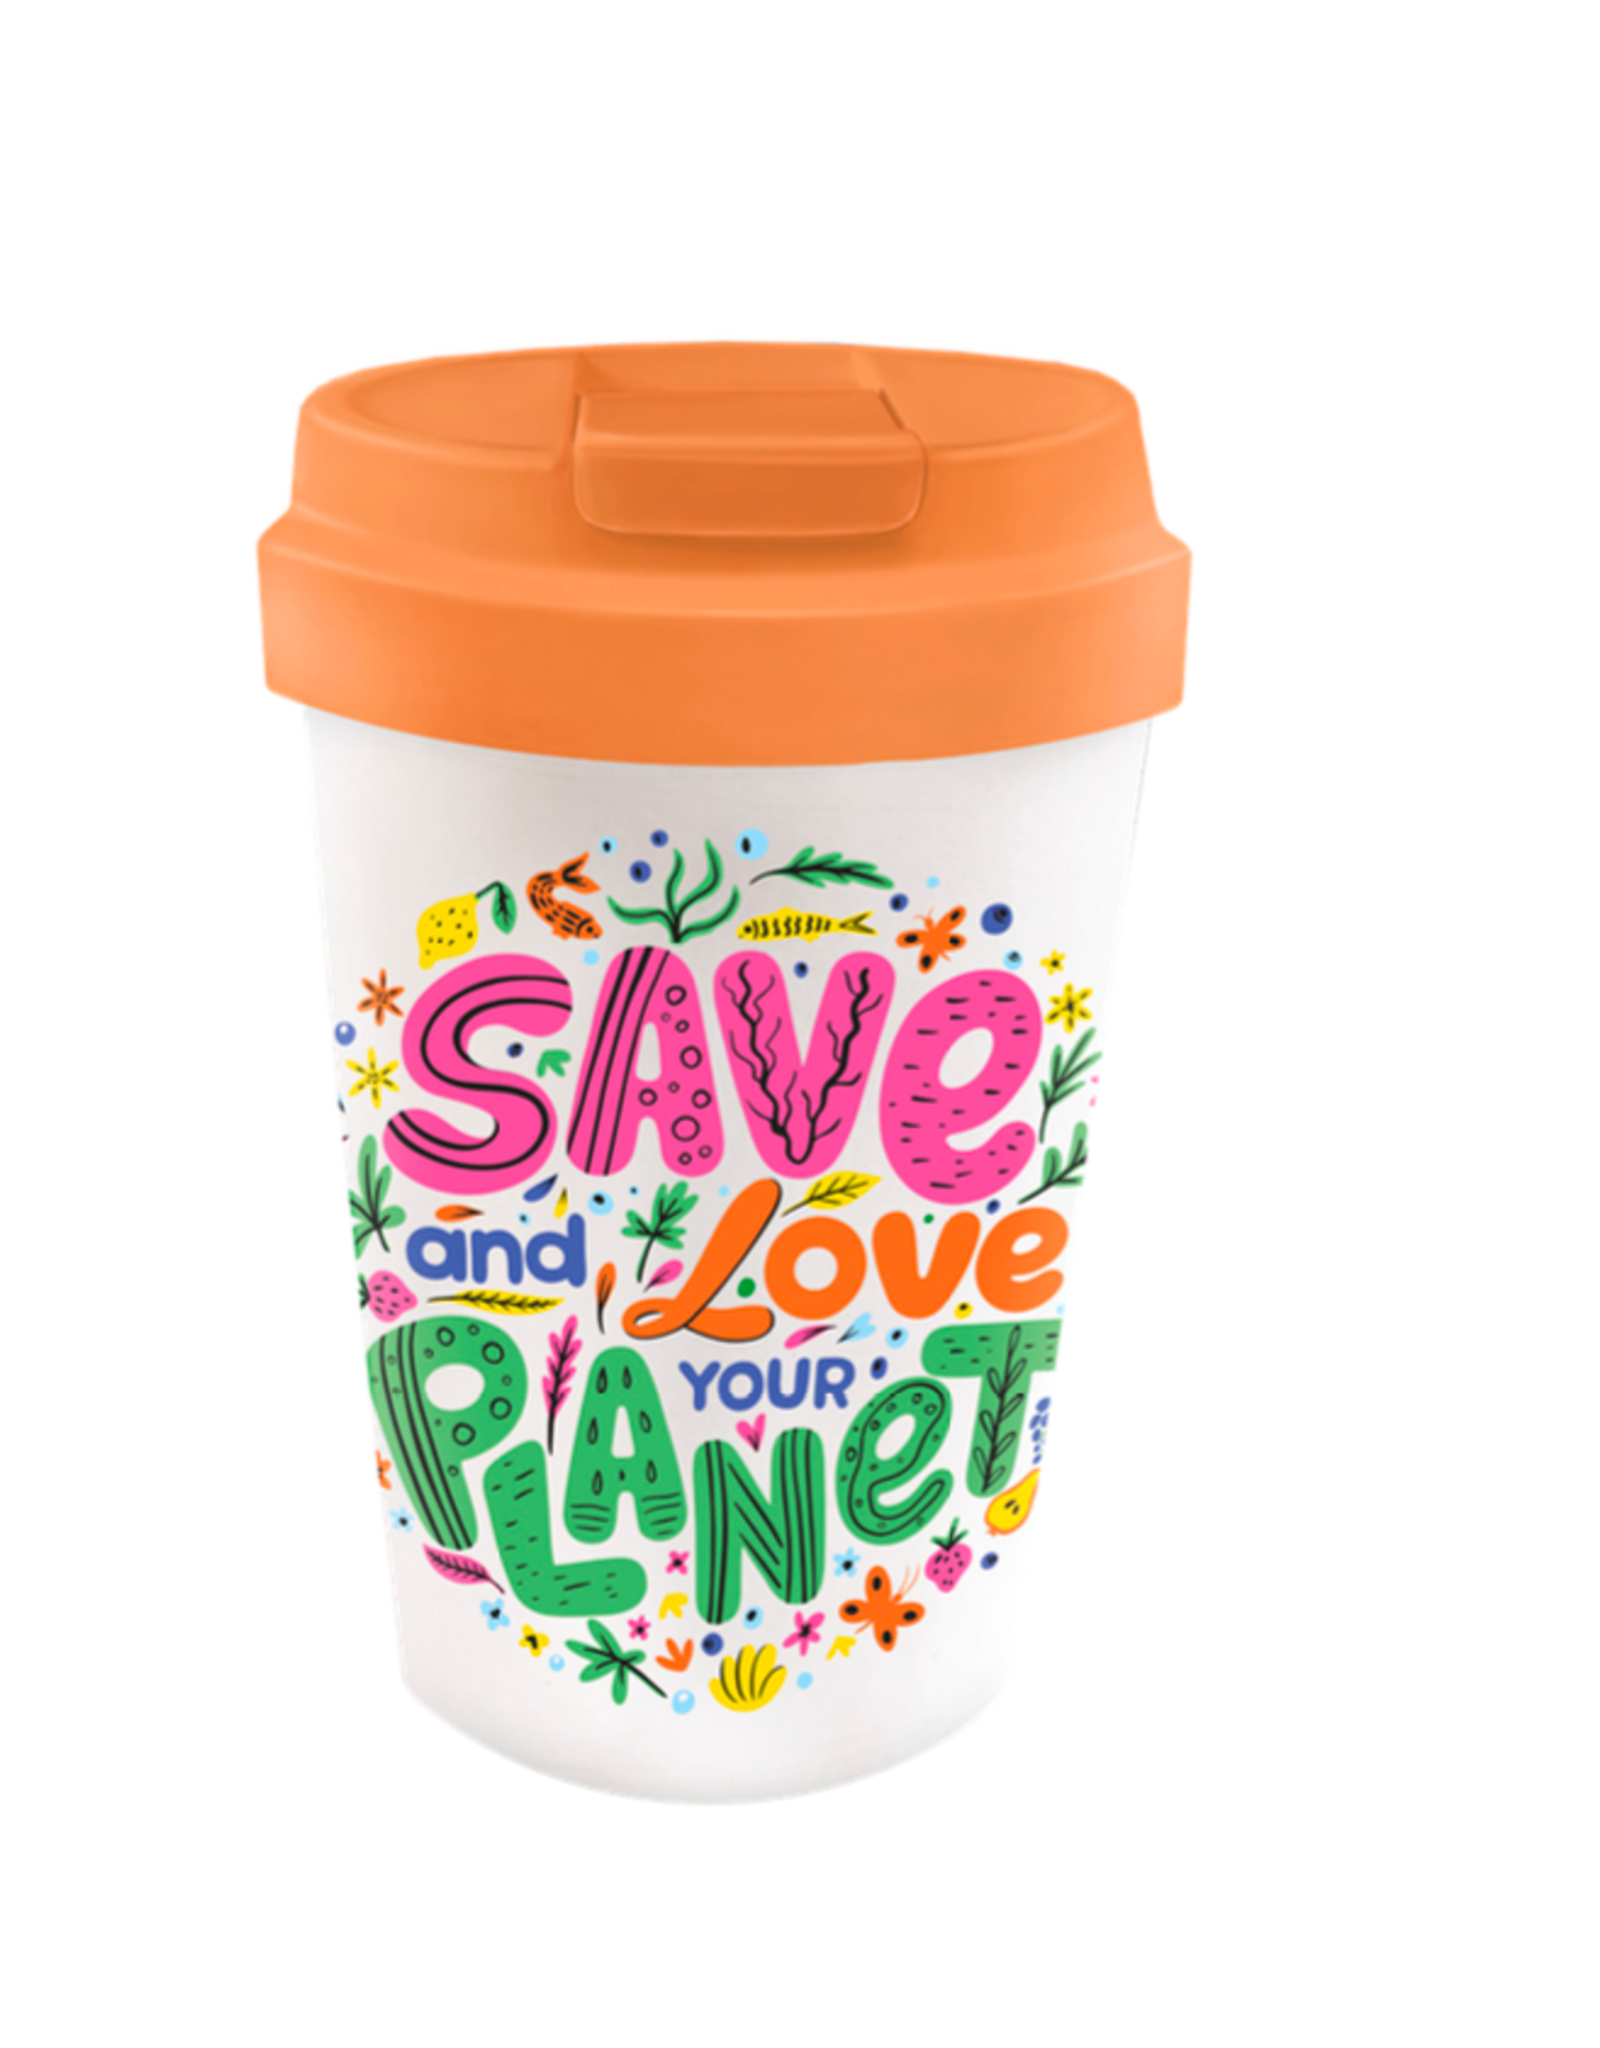 easy cup with text: save and love your planet